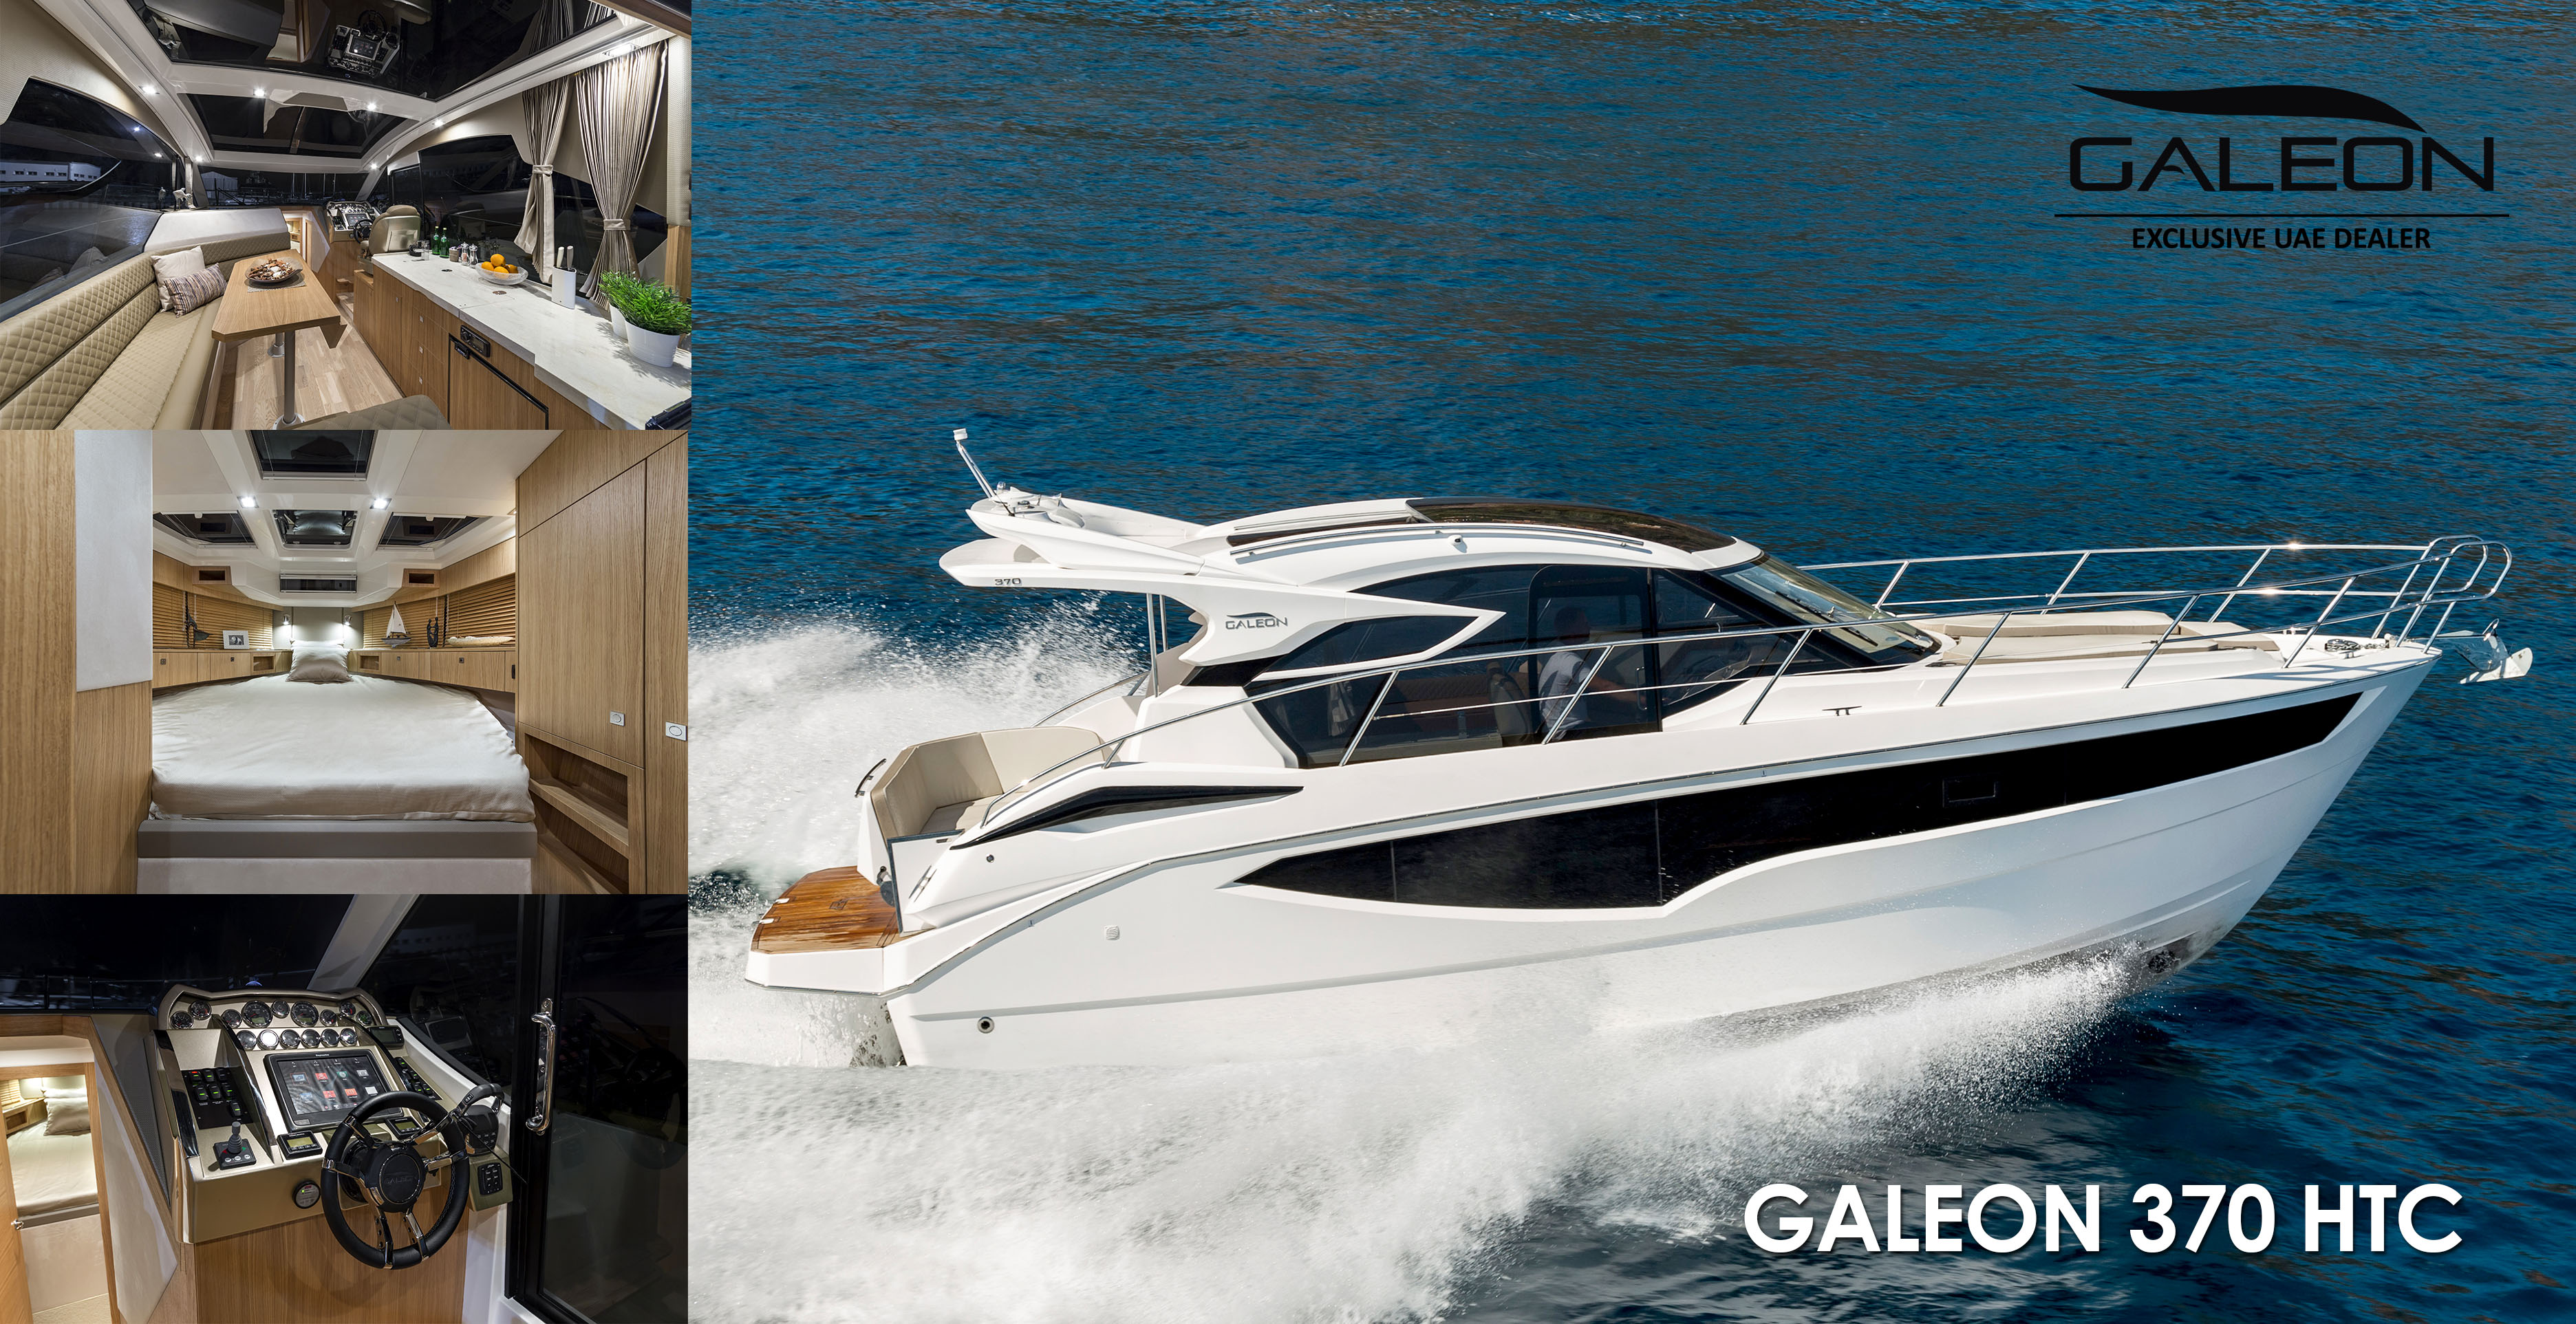 New and Used Boats For Sale in Dubai, UAE | Yacht Charter in